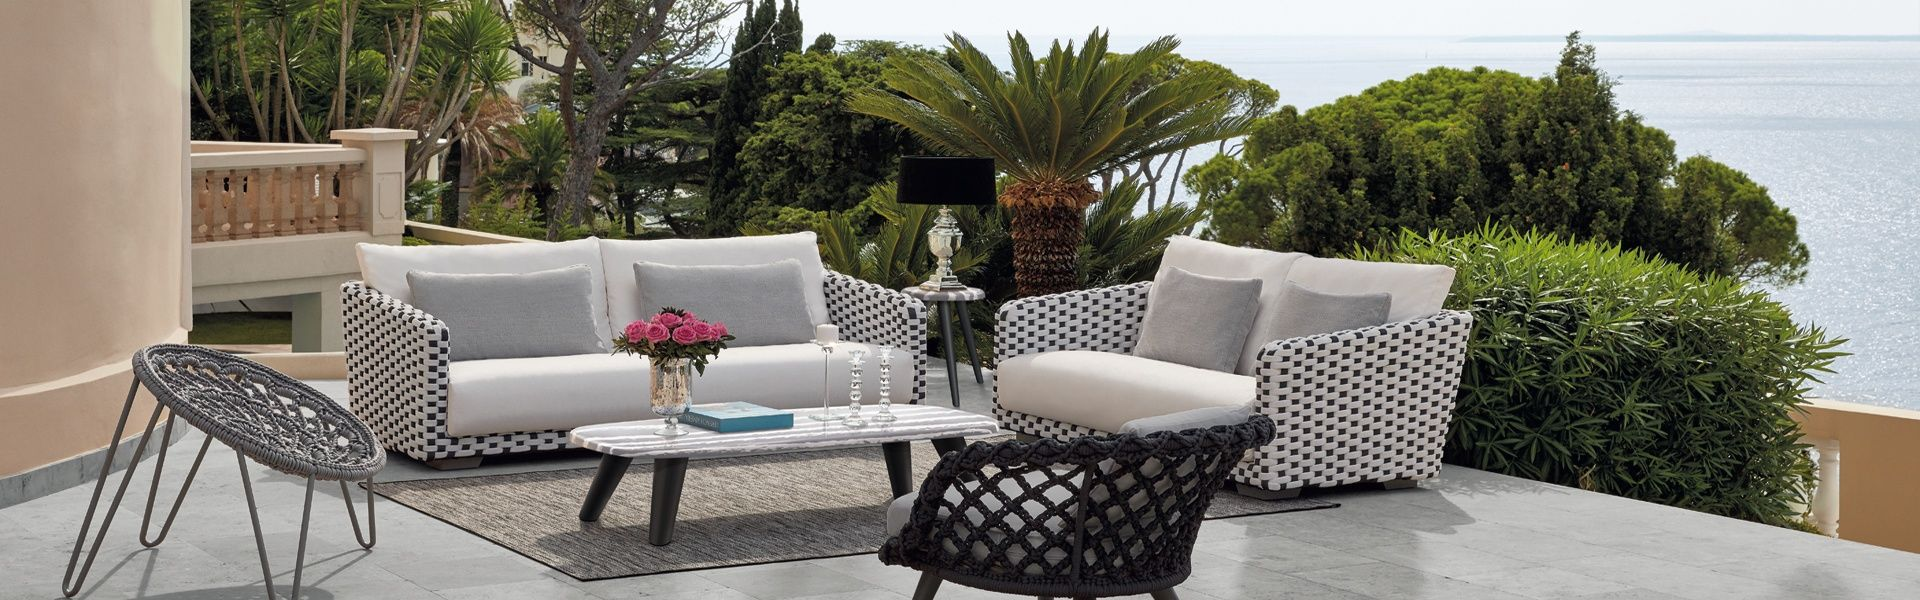 Salon De Jardin Design Sifas Basket | Segue Collection Paul Brayton ...